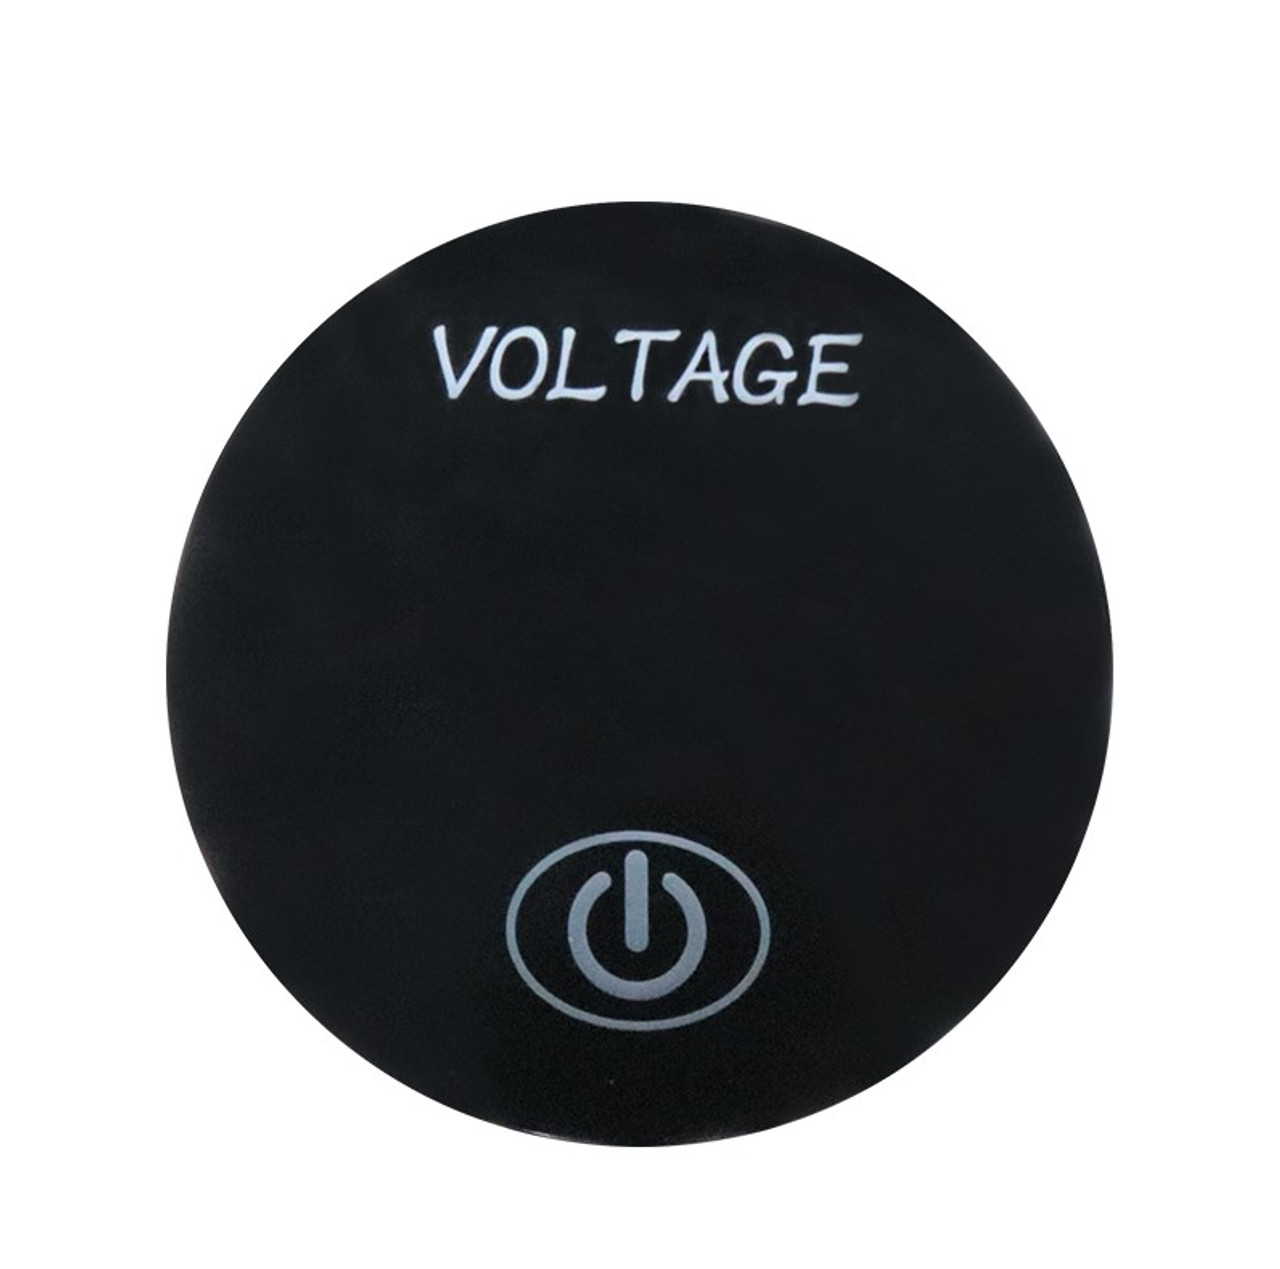 Panel Mount Digital Volt Meter with Touch Switch and % Display, Blue LED, 12 Volt, 10 A